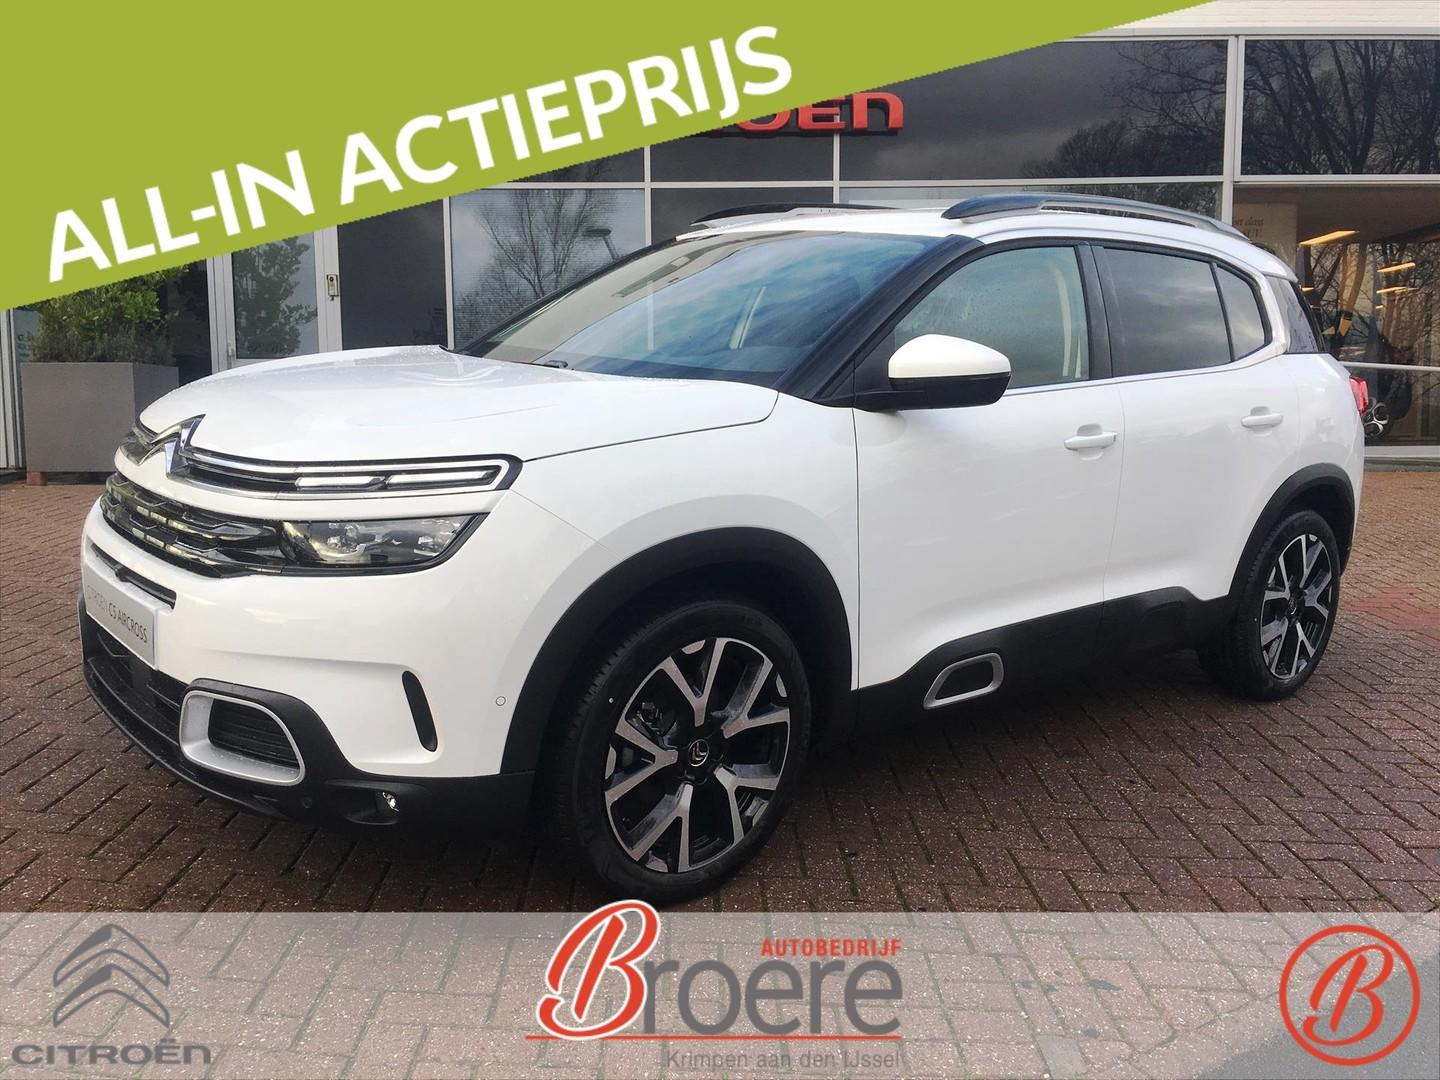 Citroën C5 aircross Puretech 130 s&s business plus